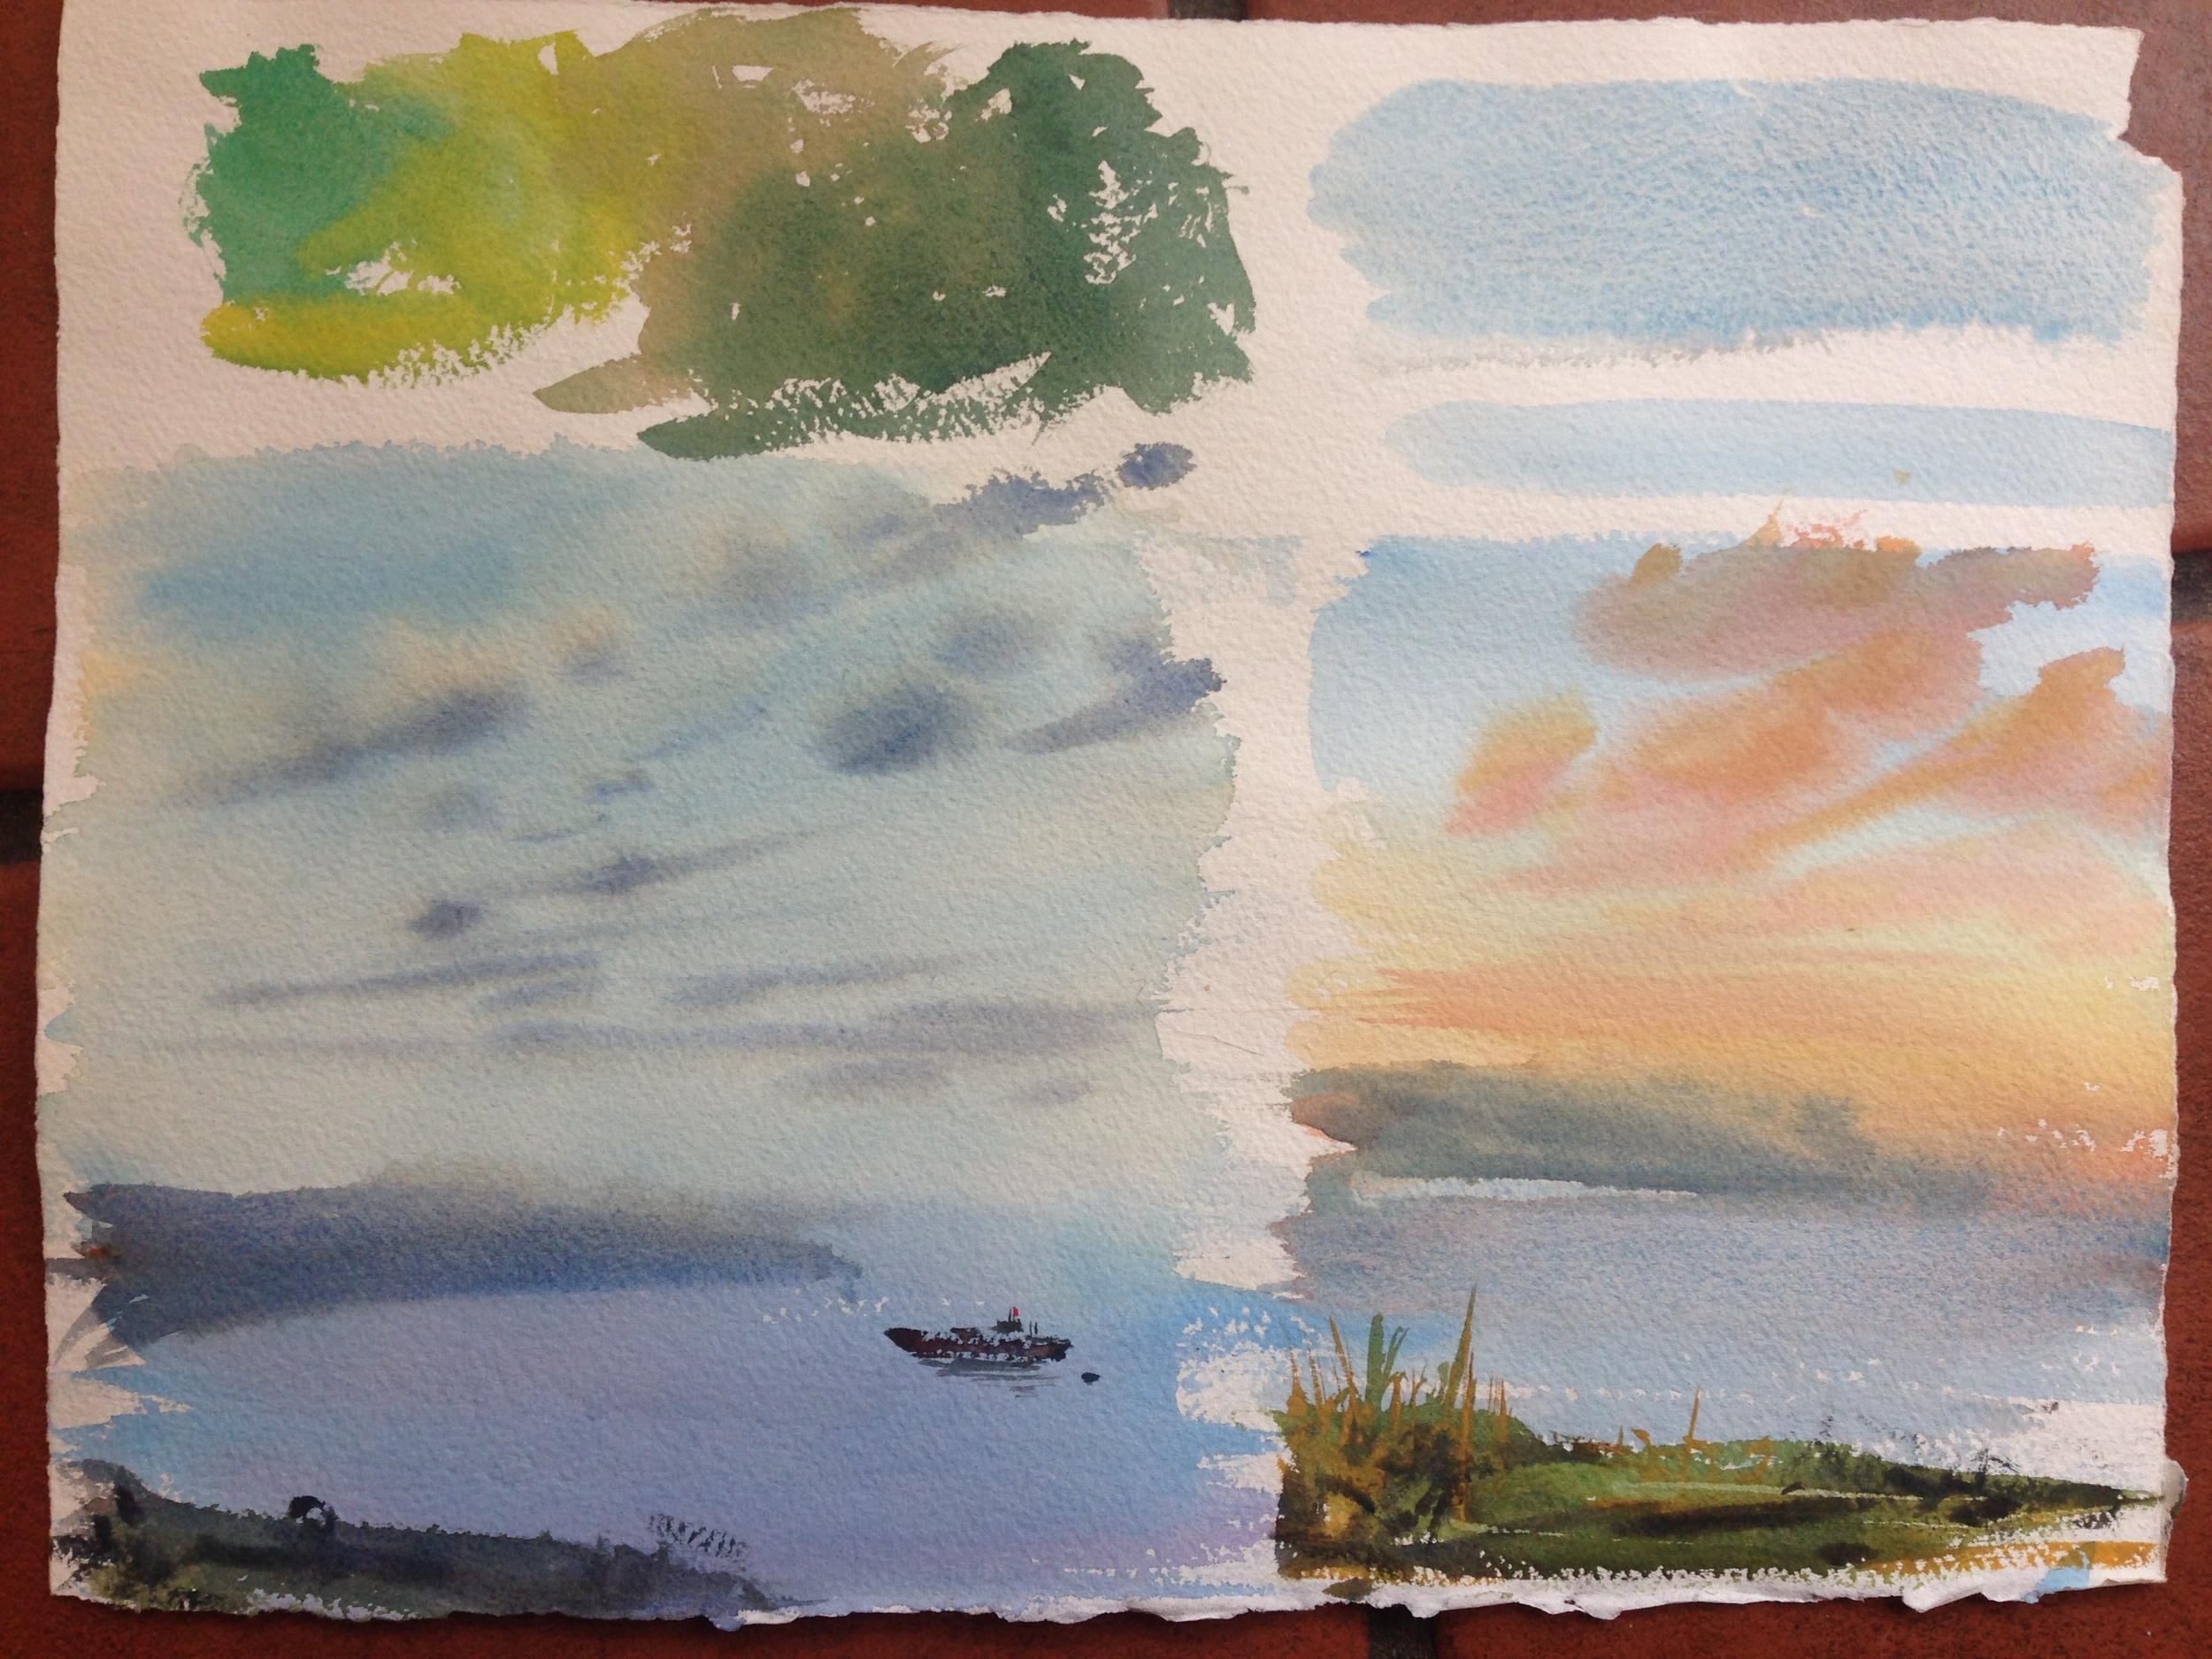 Little mini-compositions help too- it's good to see a new pigment applied. you can see its applications better when its in context.